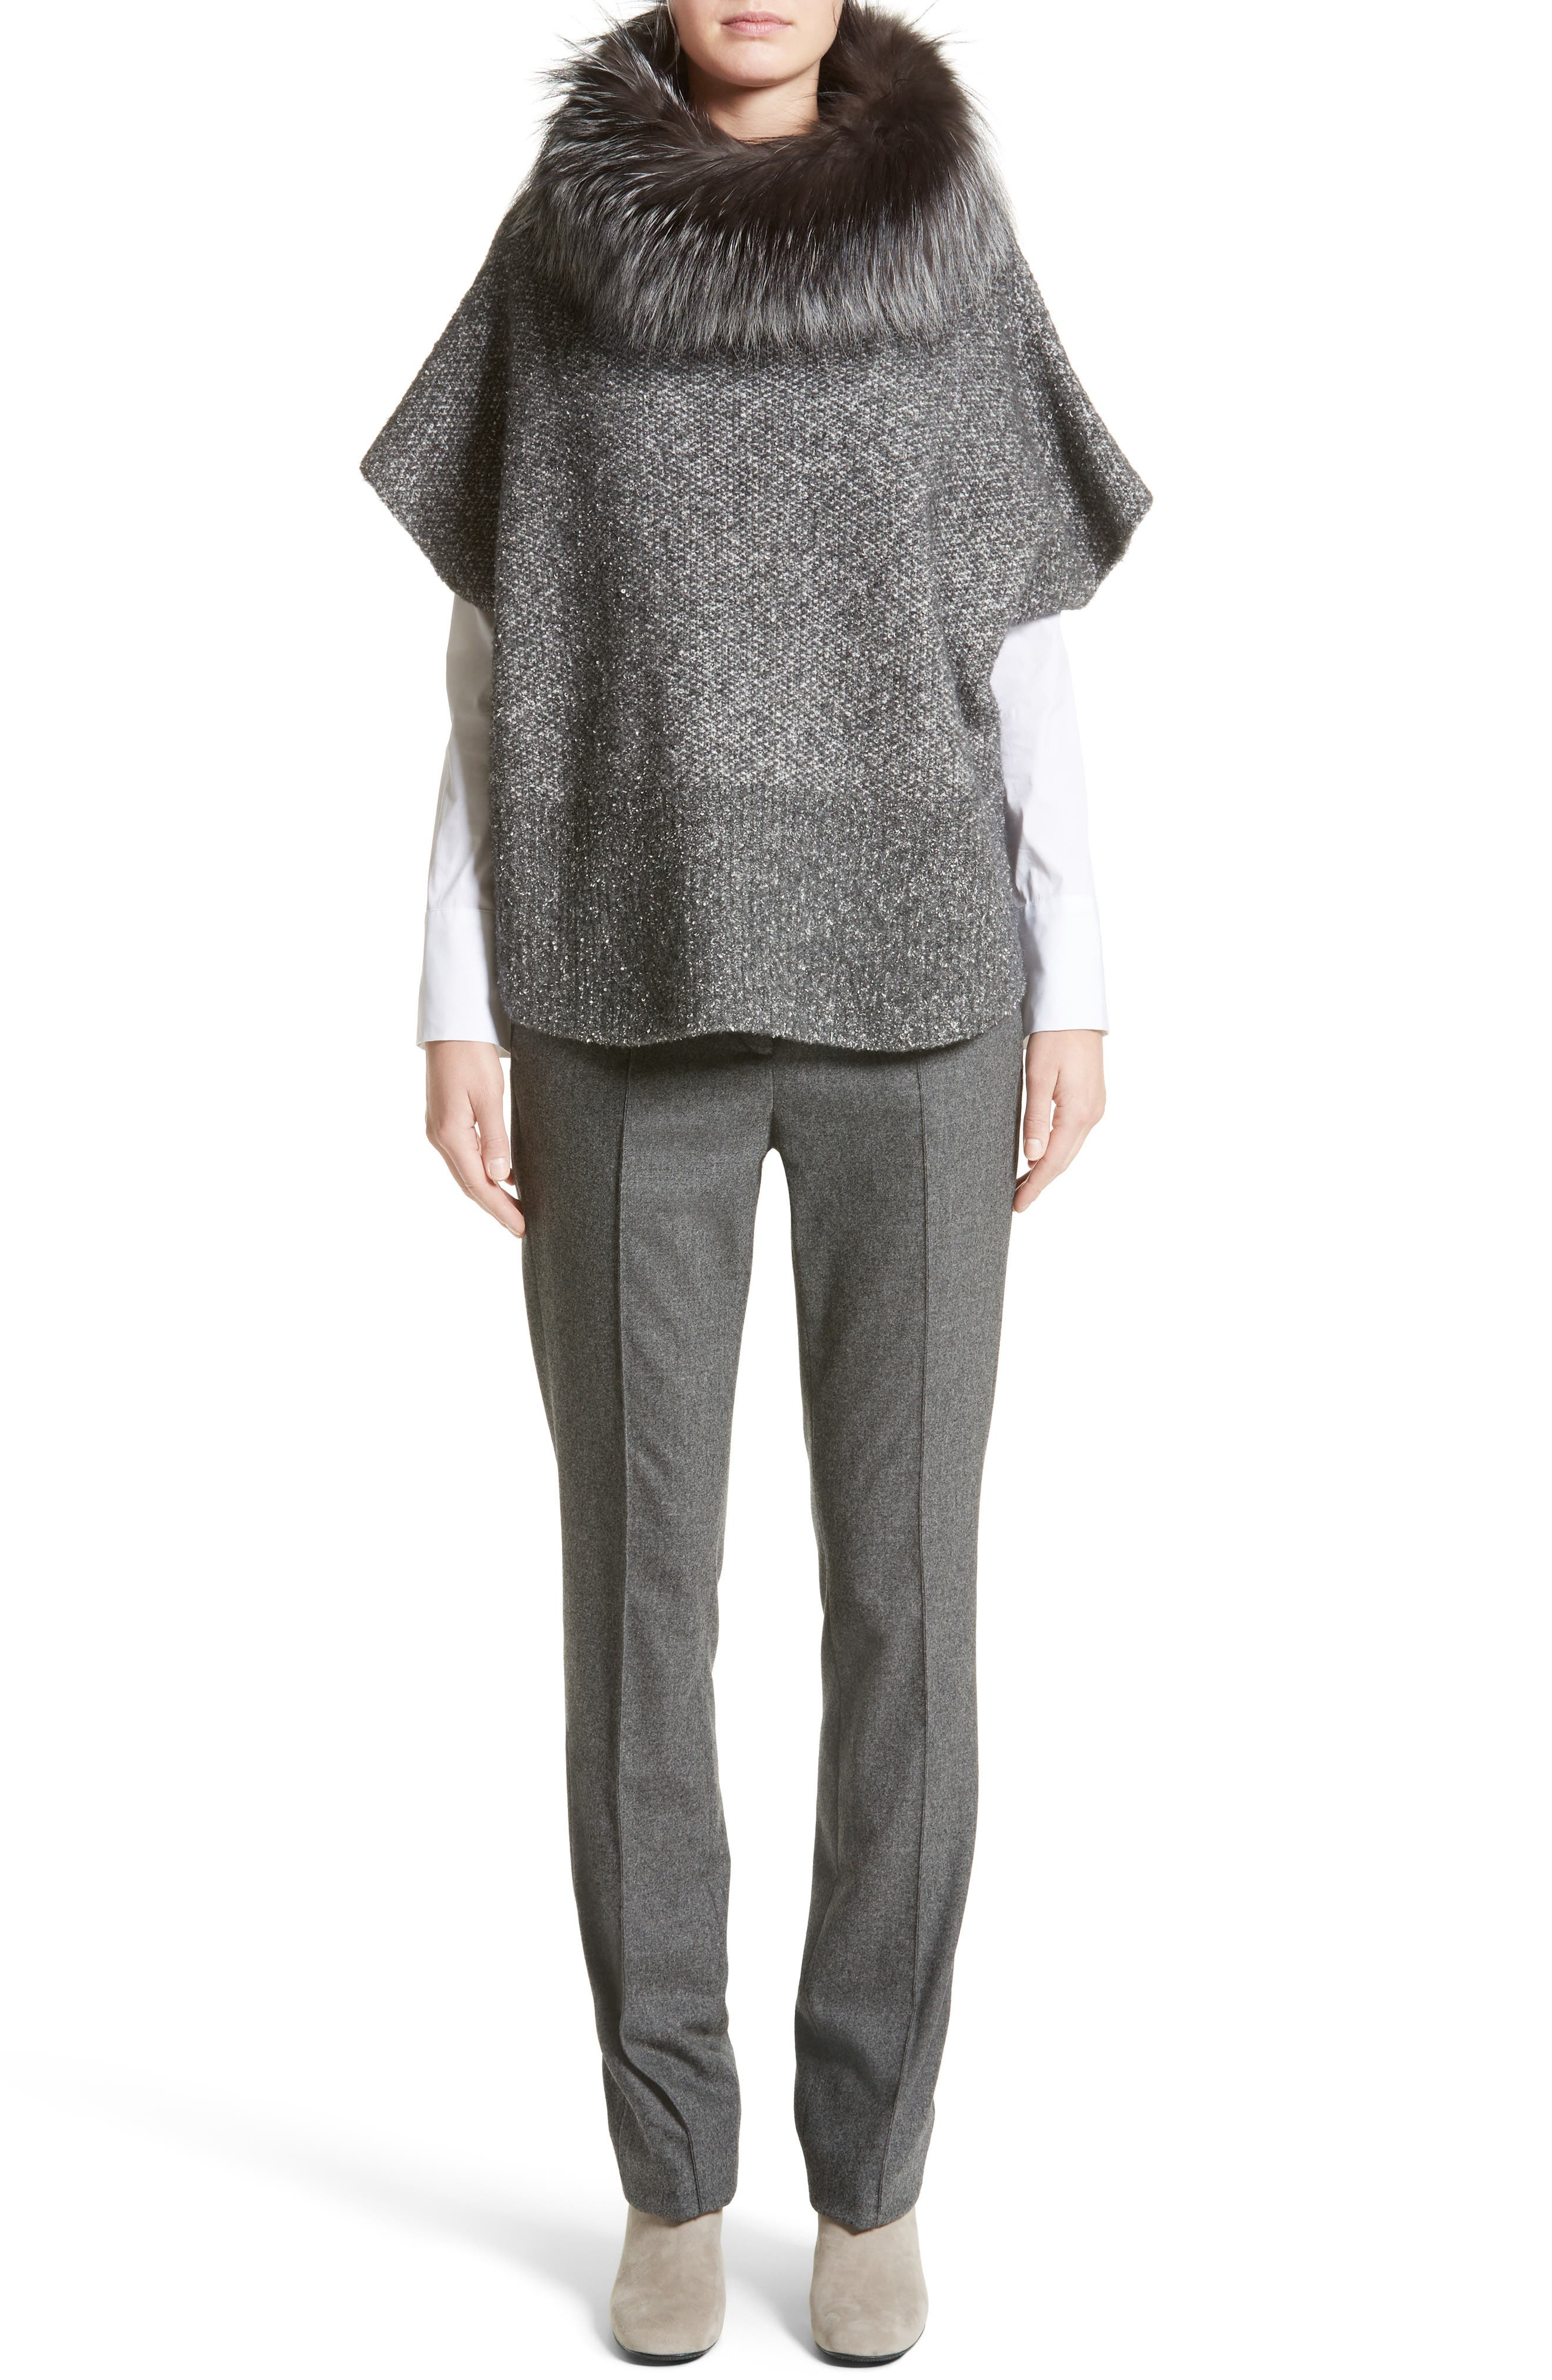 Pebble Tweed Knit Poncho with Genuine Fox Fur Collar,                             Alternate thumbnail 7, color,                             021